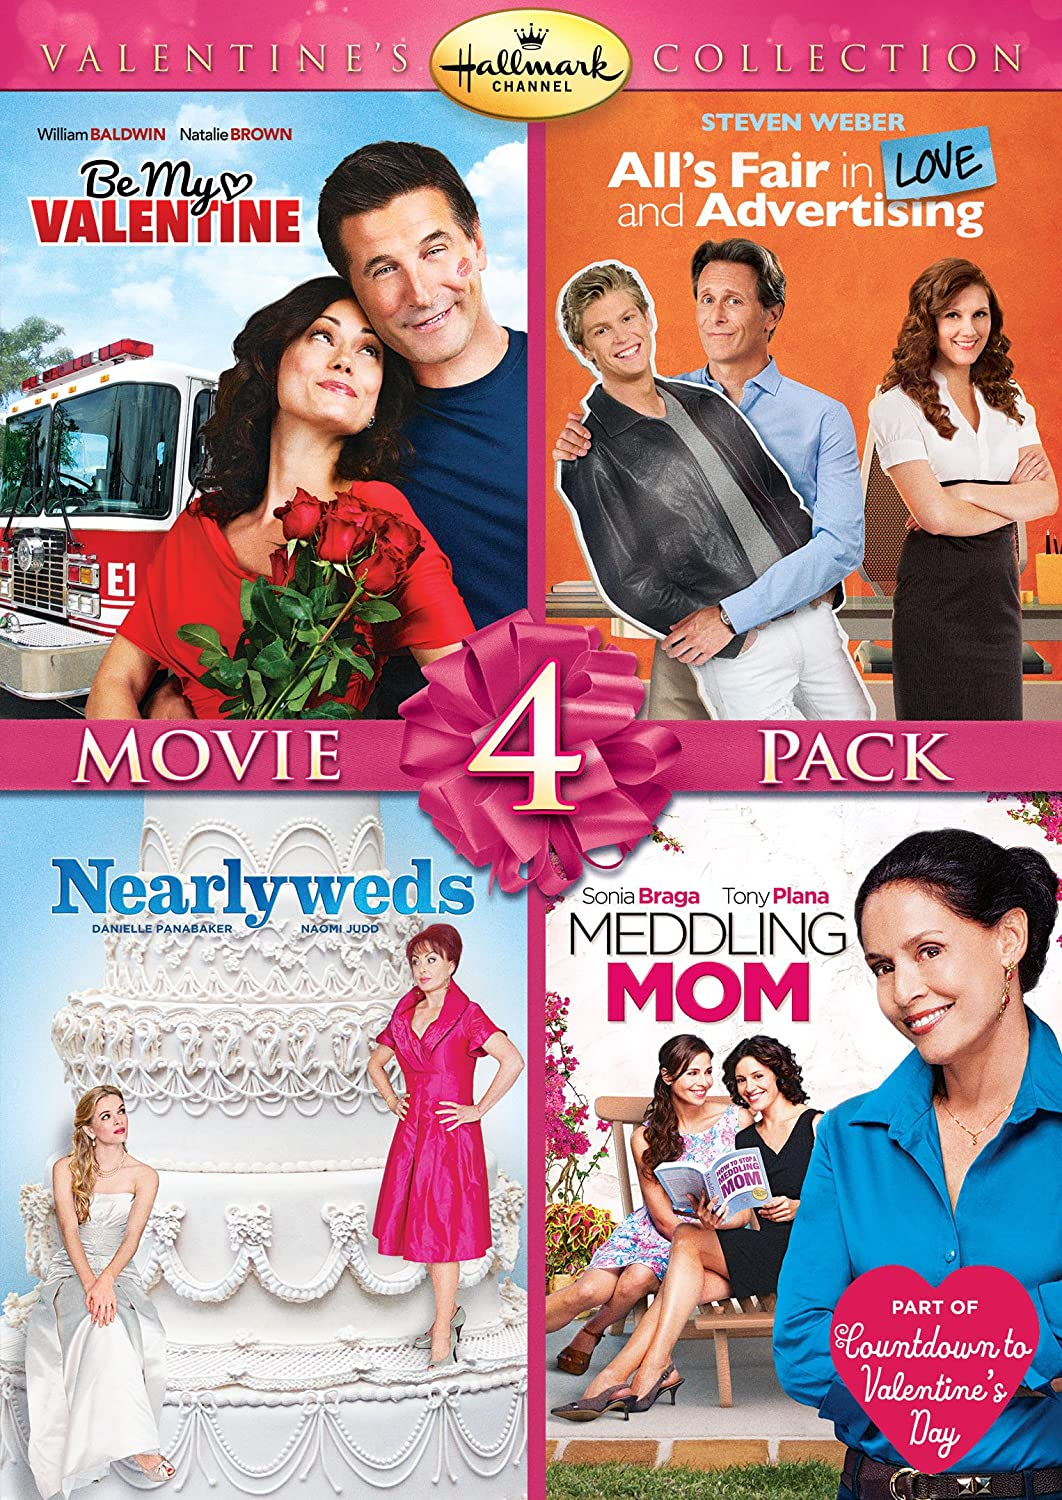 ... Fair In Love And Advertising, Be My Valentine, Meddling Mom,  Nearlyweds): William Baldwin, Sonia Braga, Steven Weber, Naomi Judd, None:  Movies U0026 TV